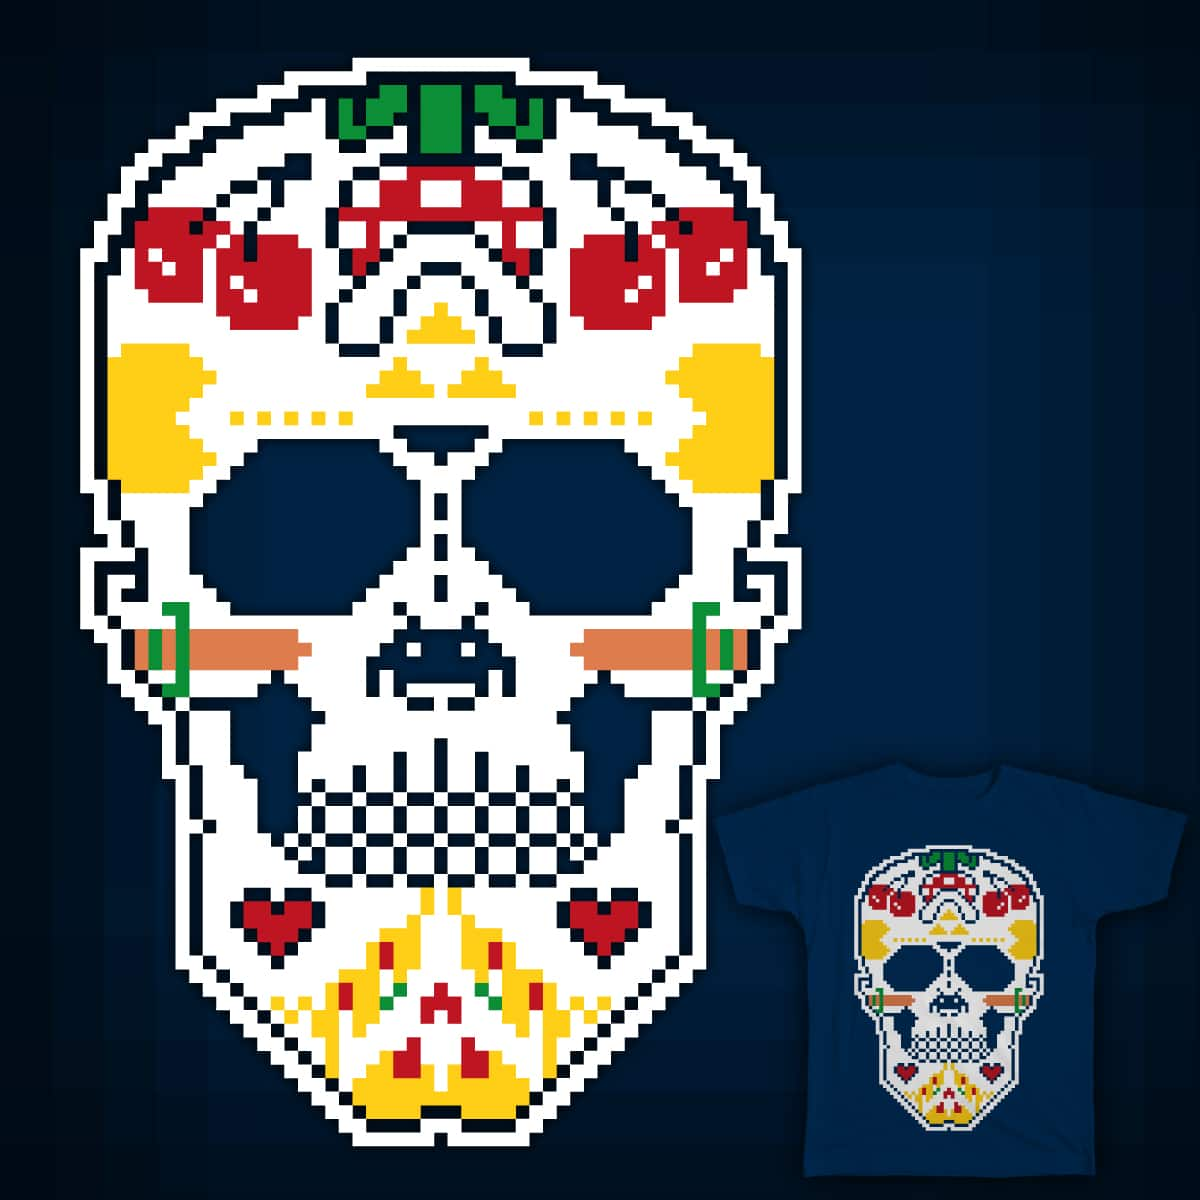 8-bit sugar skull by erreeme on Threadless